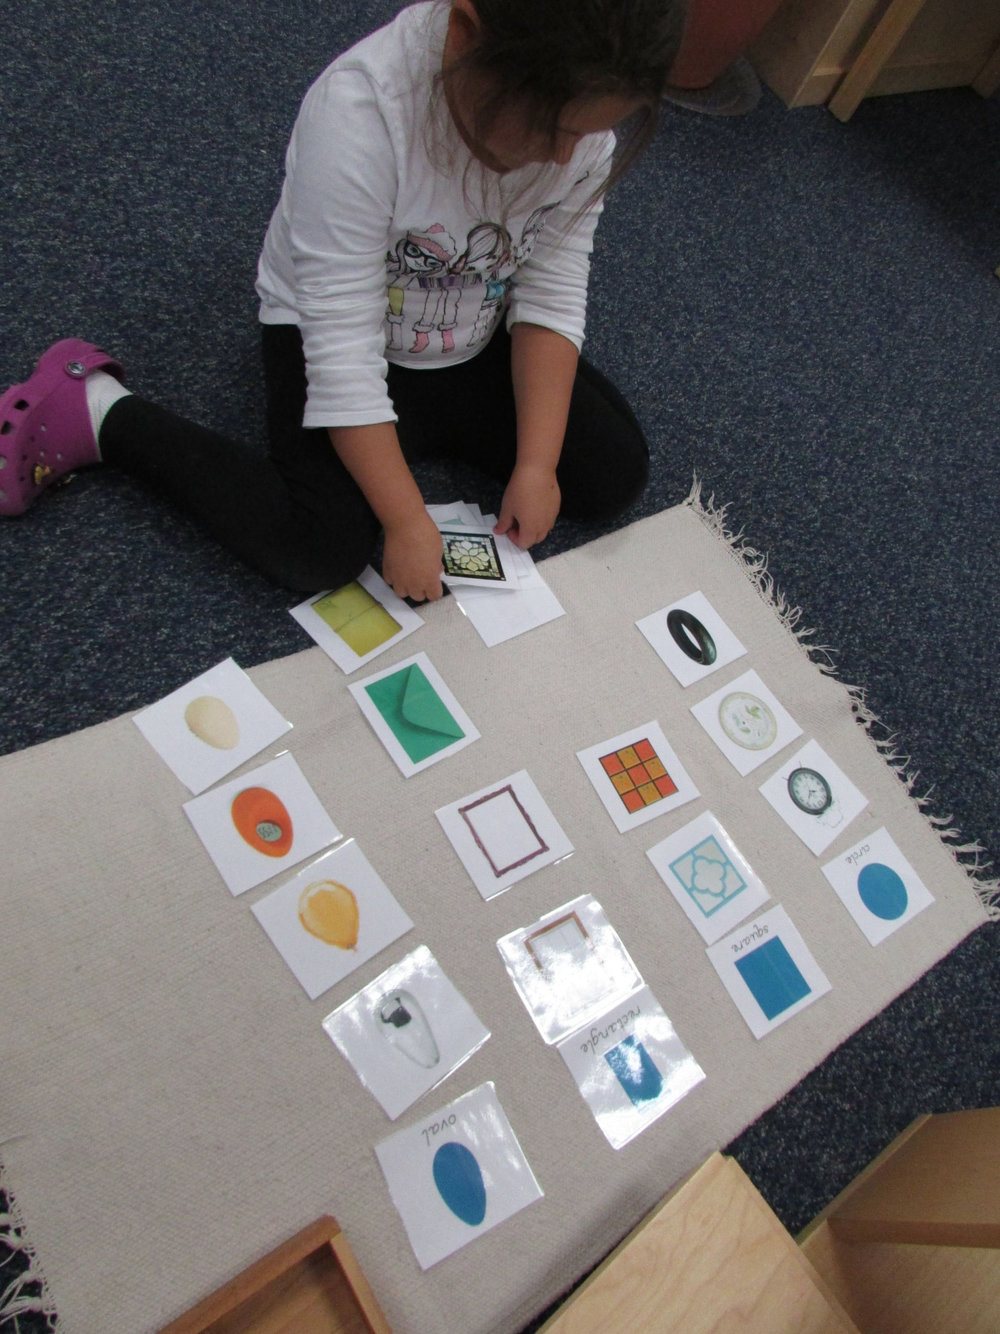 A new work in the Primary 3 class is aimed at developing observational skills. It requires observing shapes and categorizing them with other pictures with similar shapes.  Knowledge of the geometric shapes is important to support early mathematical skills.